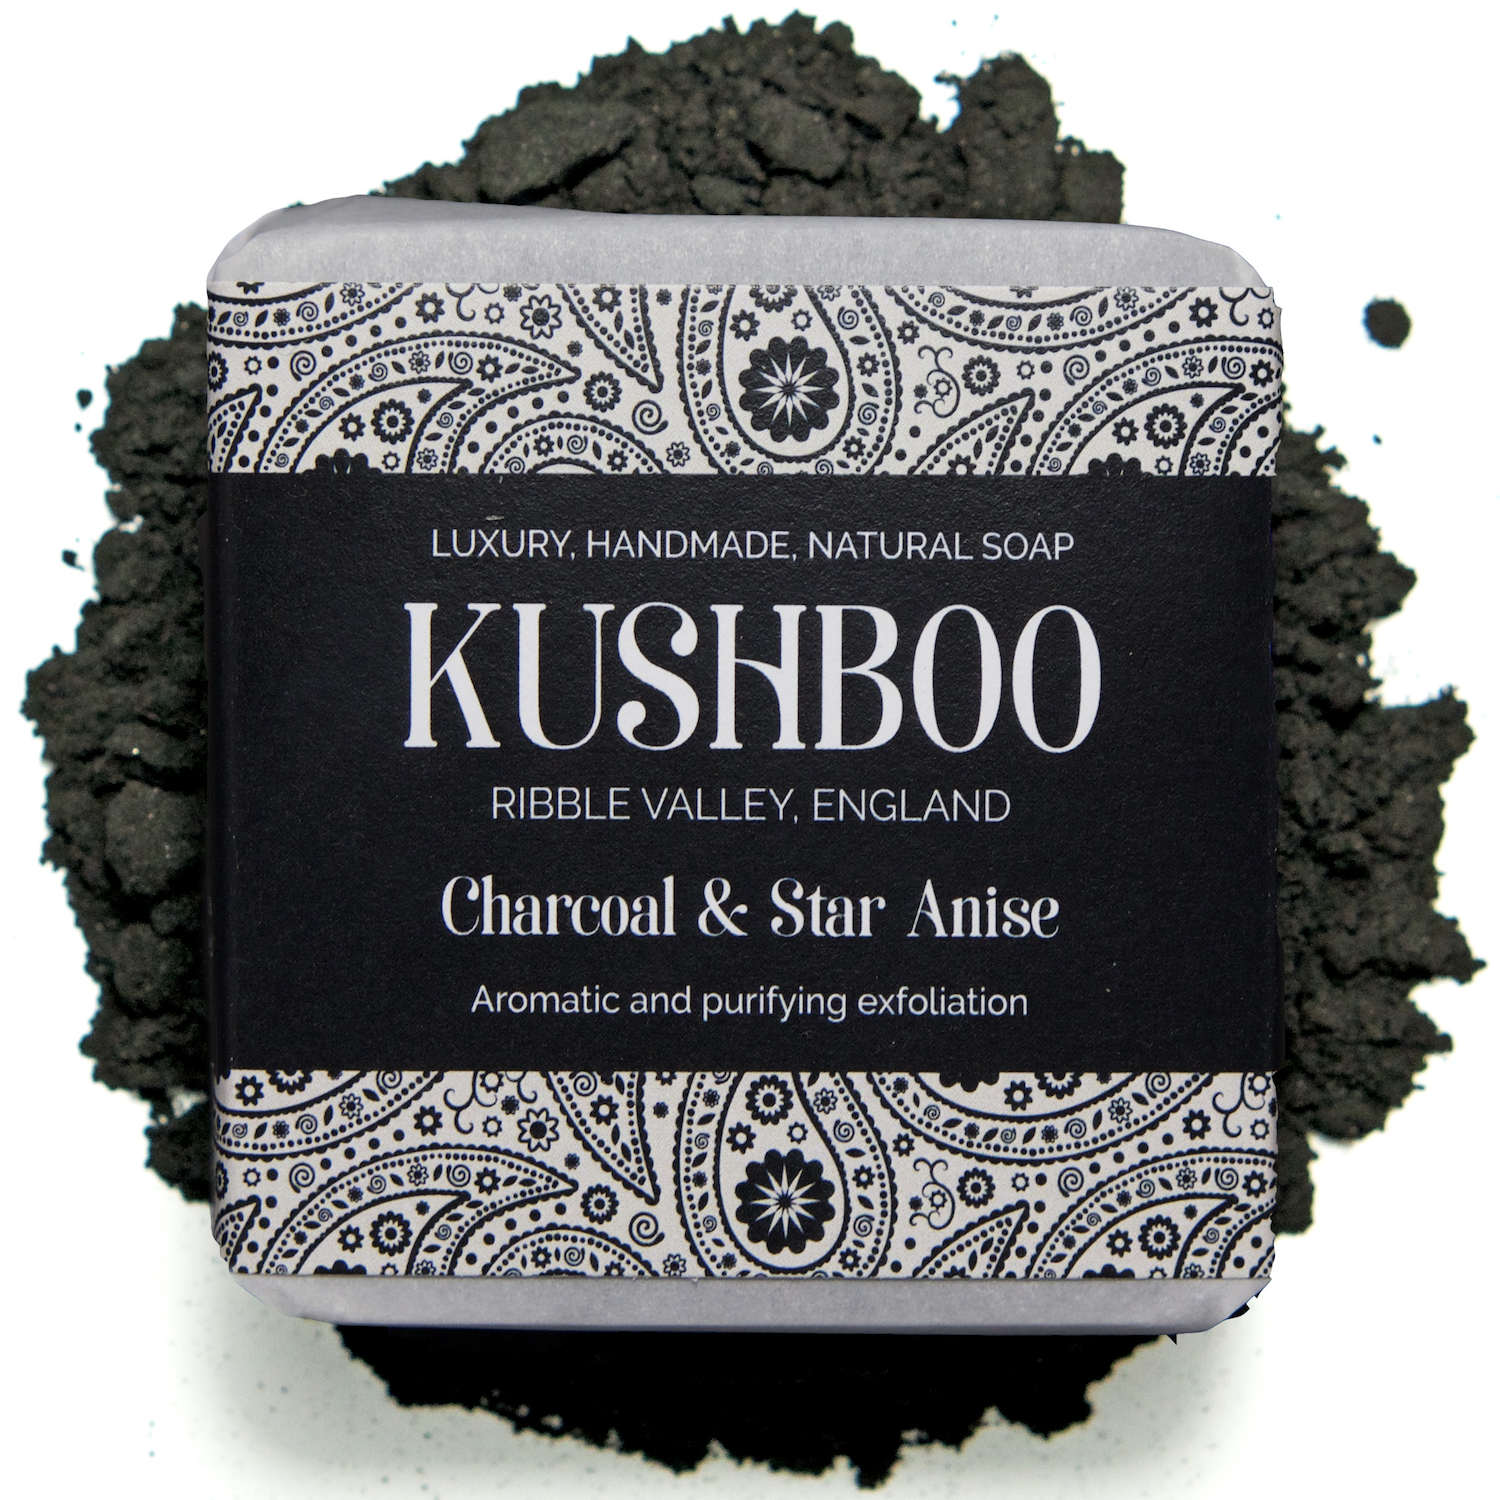 Kushboo Charcoal and Star Anise Soap